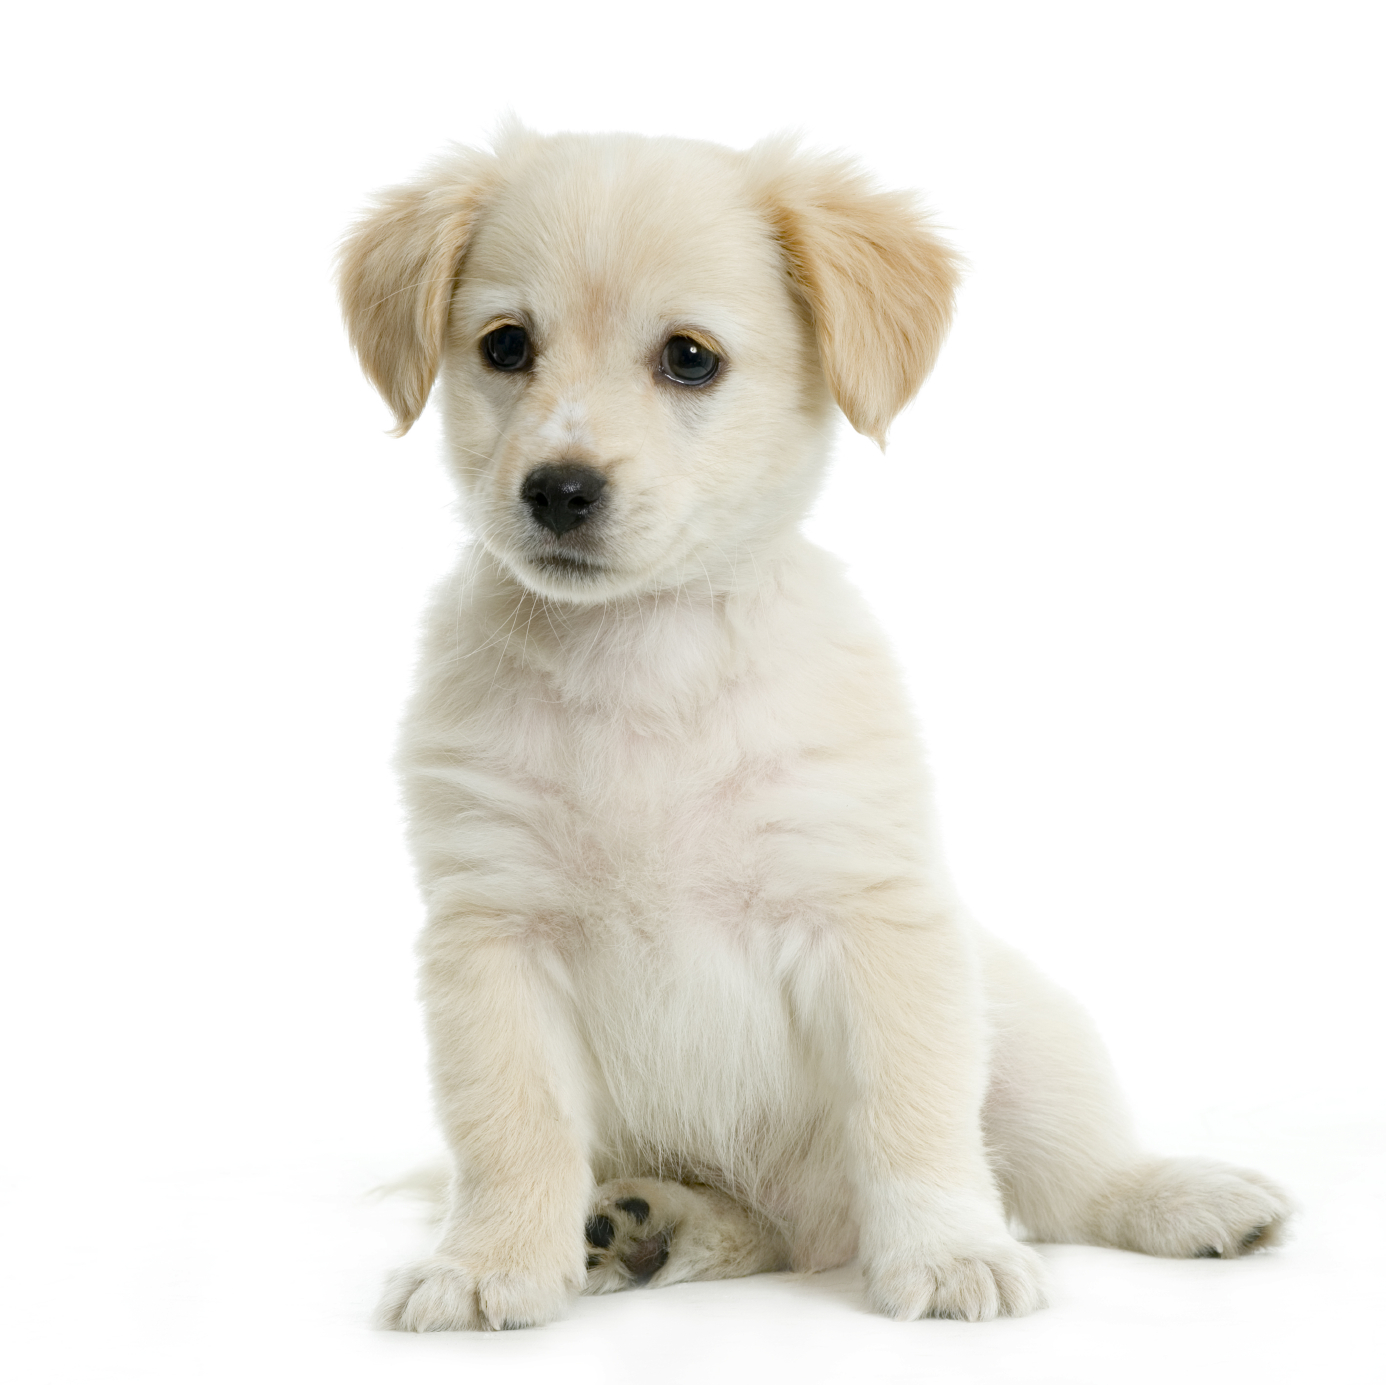 Get prepared before bringing home an adorable Golden Retriever puppy.